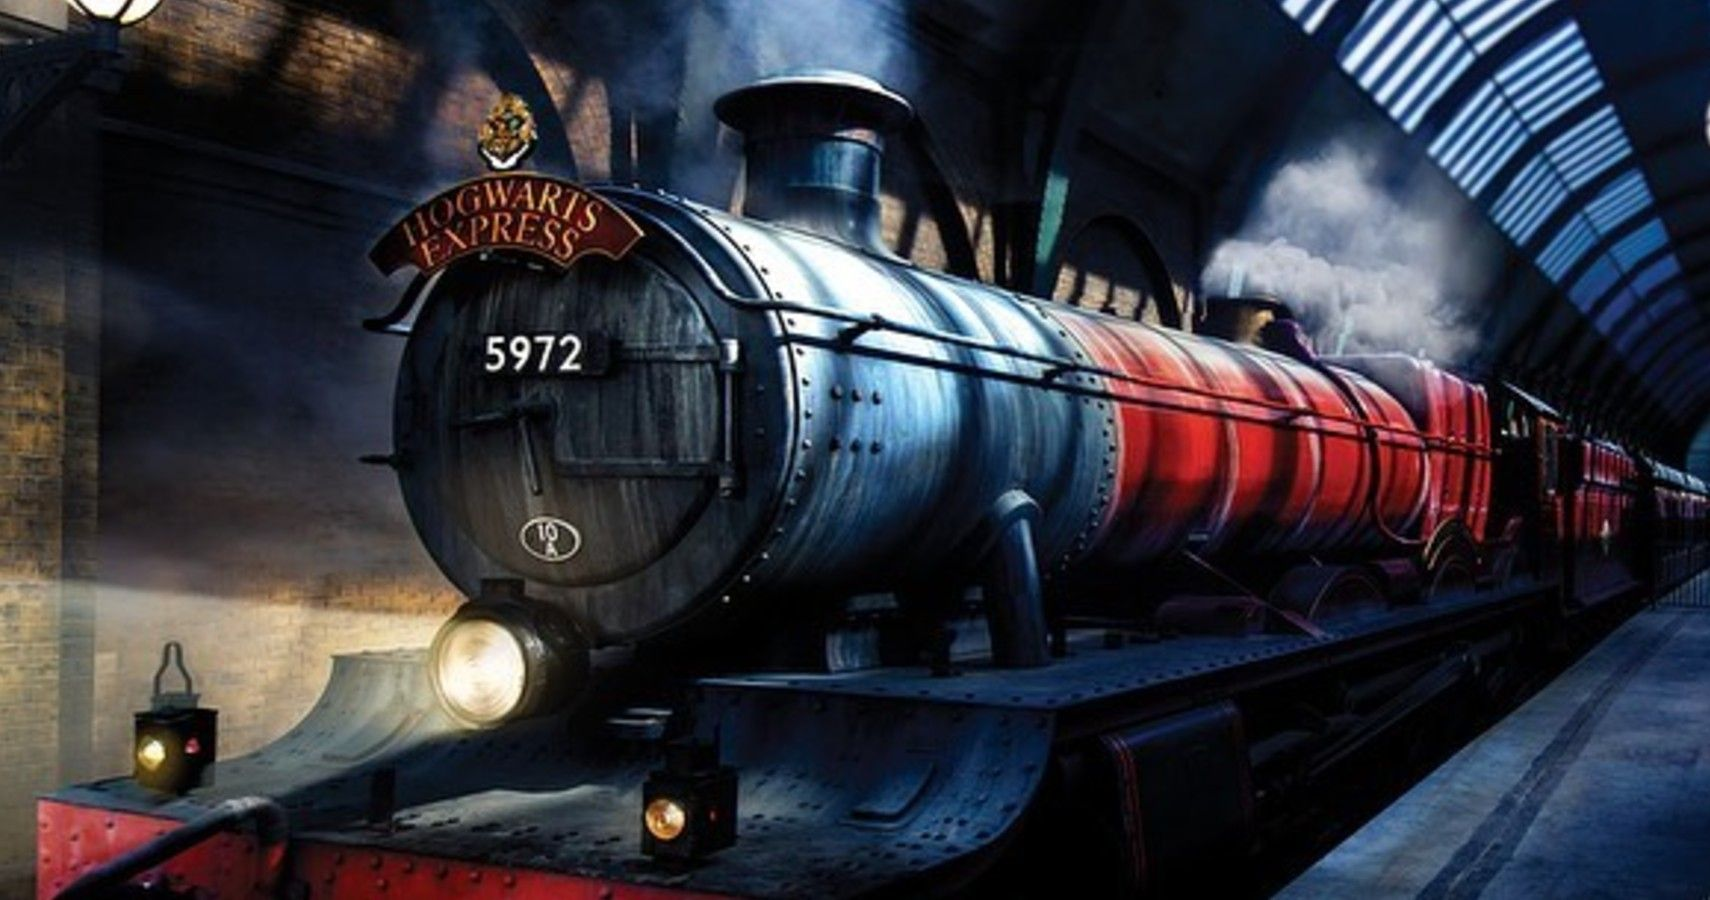 Harry Potter Movie Series: Behind-The-Scene Facts | Moms.com